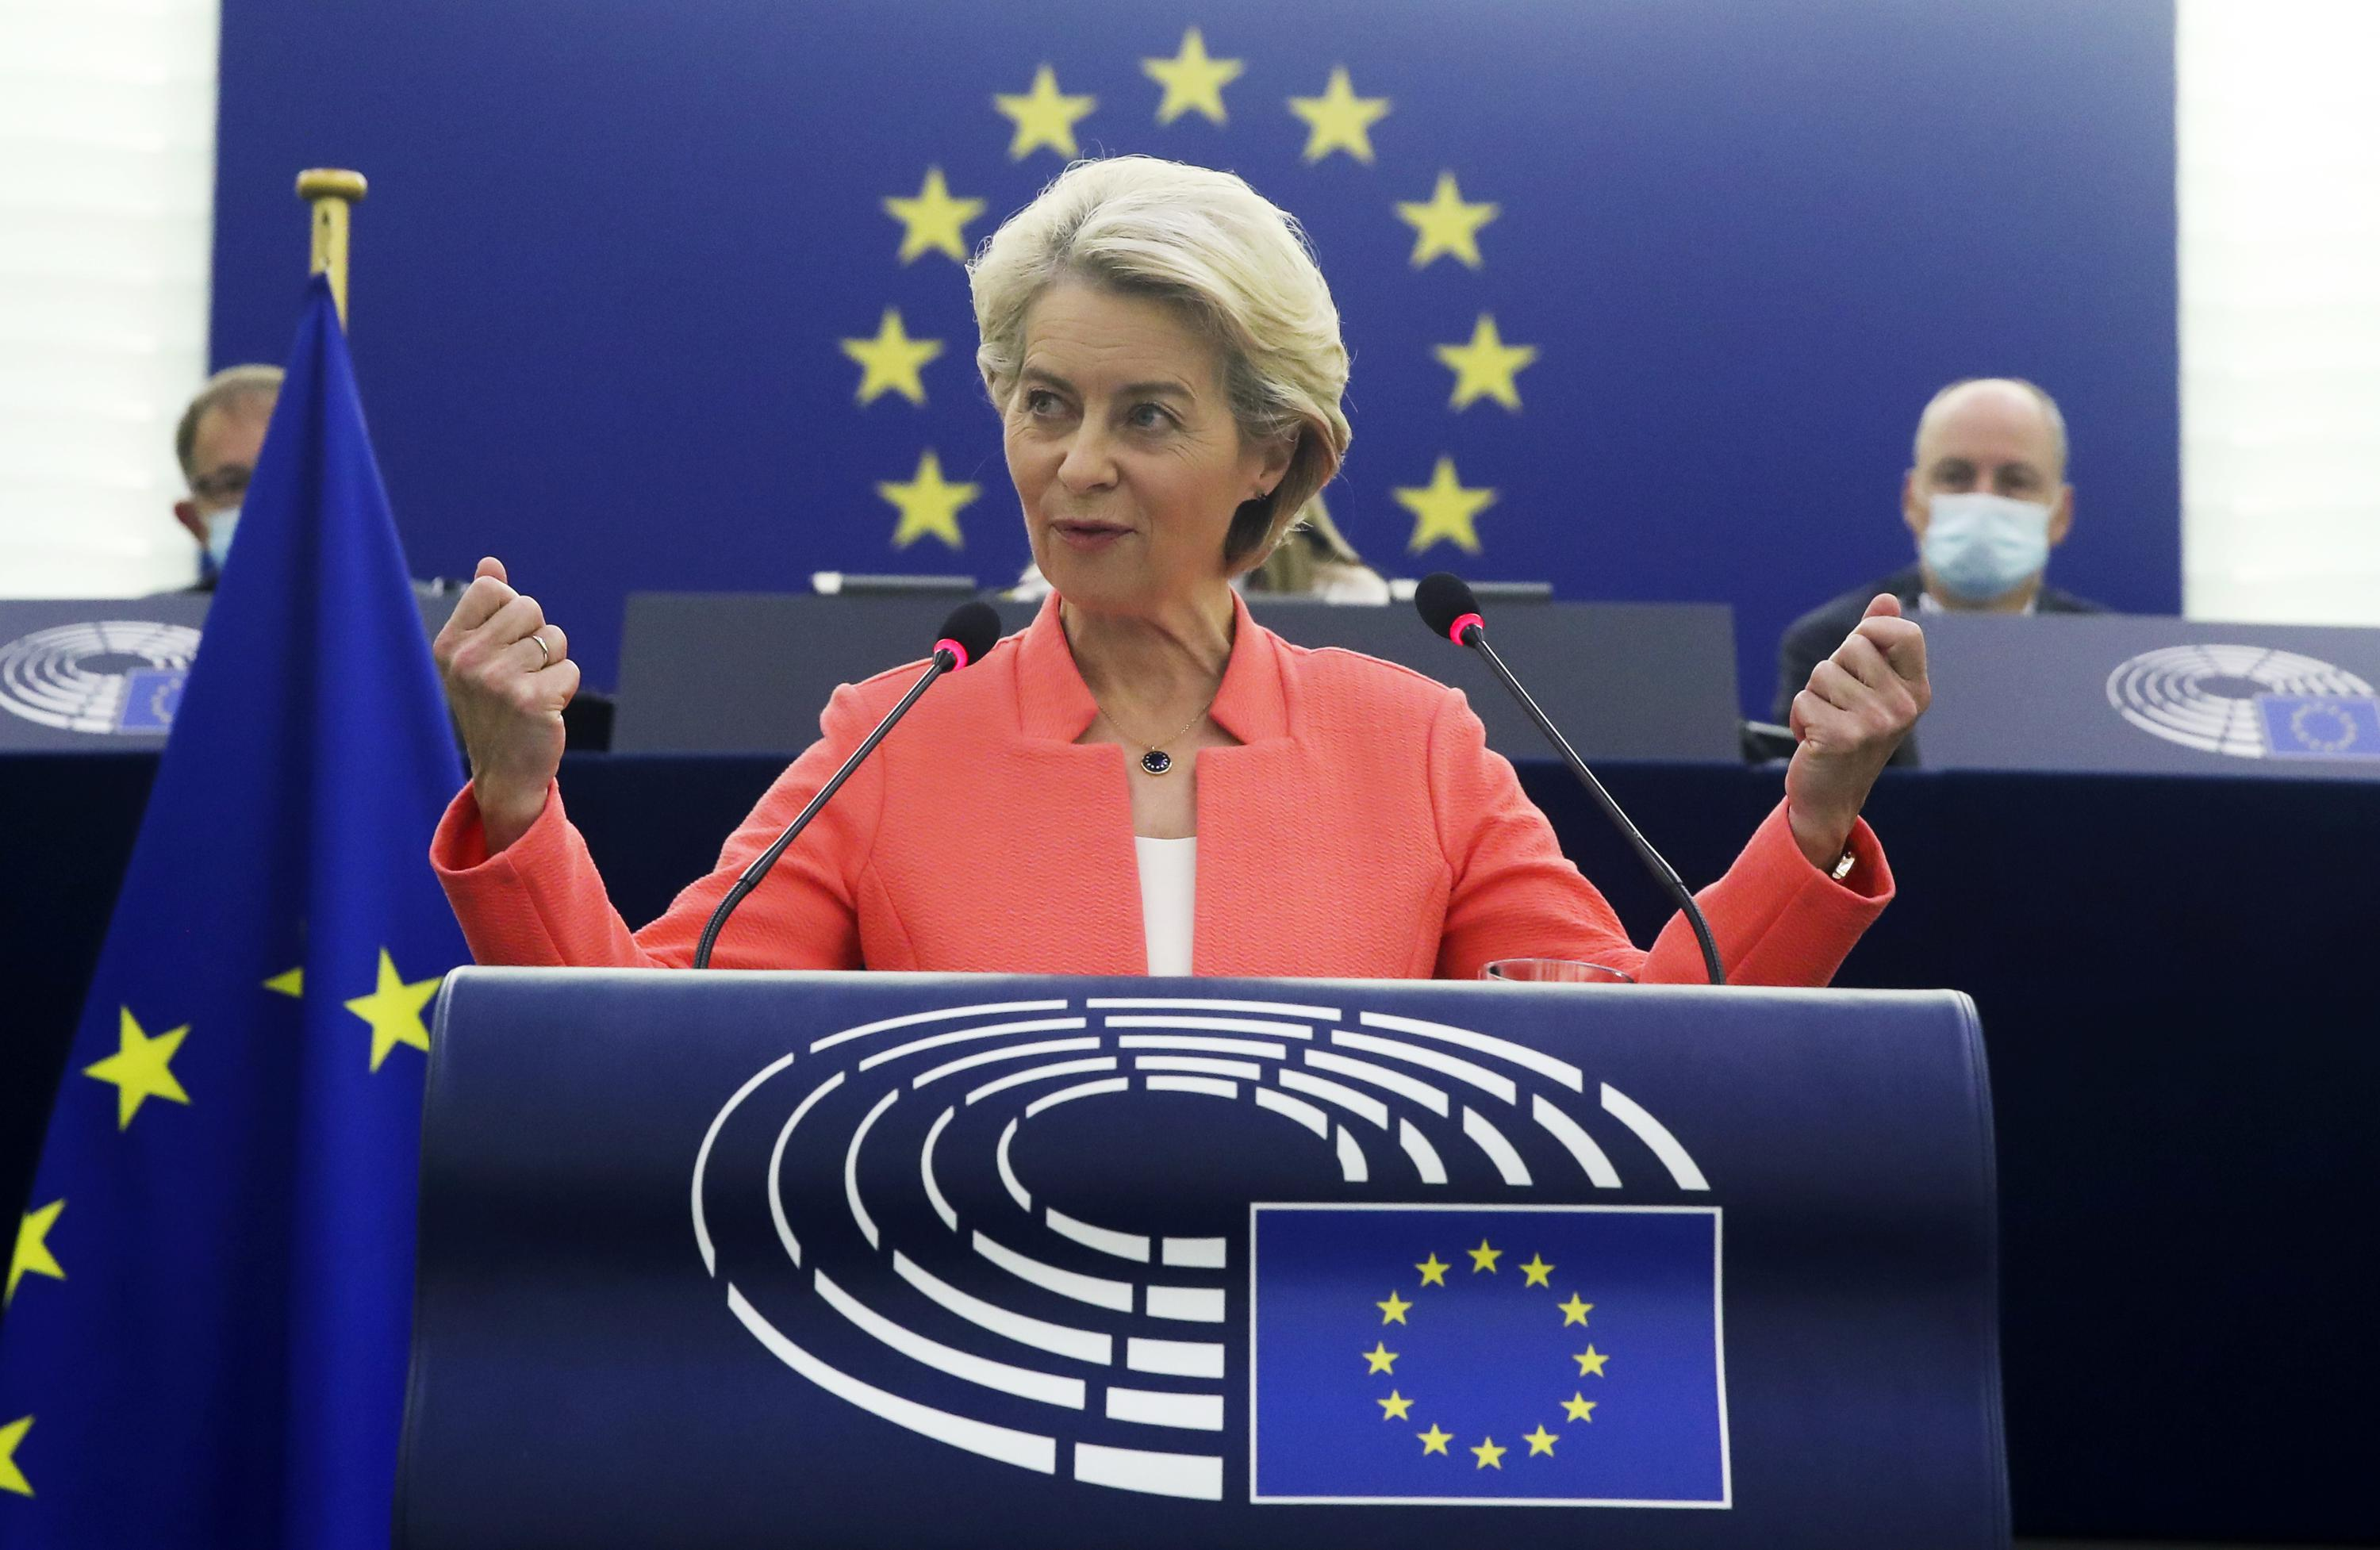 Stung by Afghan debacle, EU forges ahead with security plans